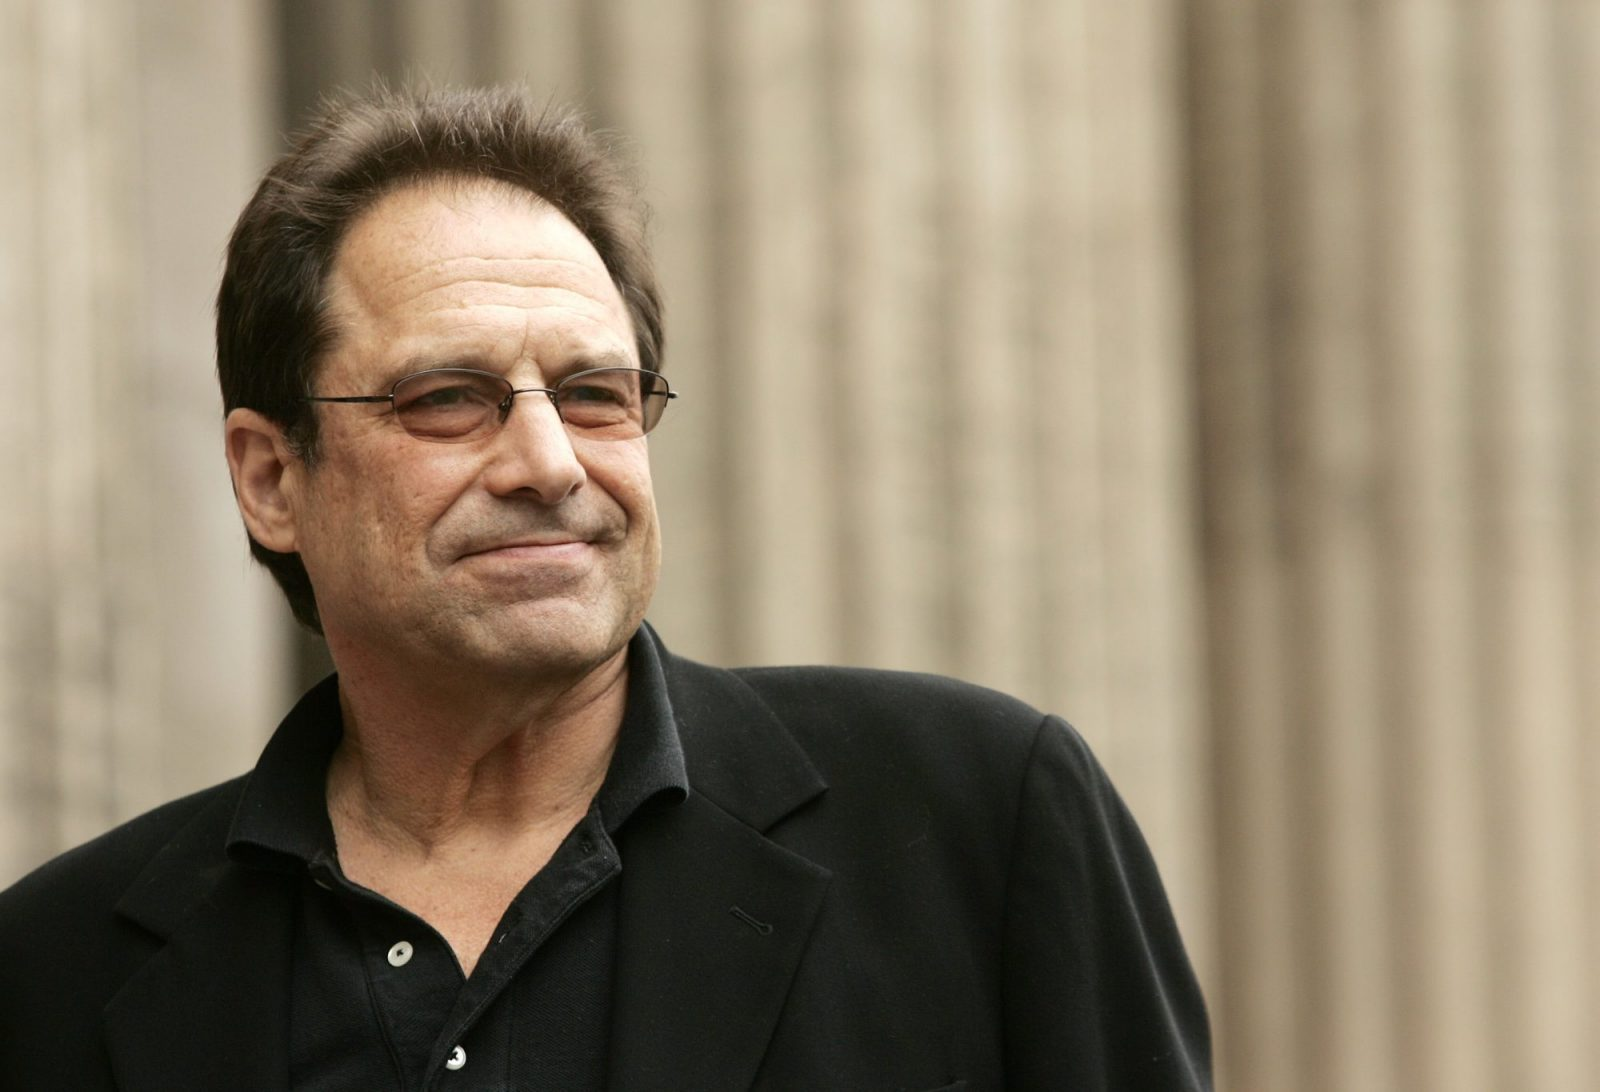 david milch bltdavid milch net worth, david milch imdb, david milch shows, david milch deadwood movie, david milch twitter, david milch blt, david milch columbia, david milch foundation, david milch faulkner, david milch perpetual licensing, david milch nyit, david milch youtube, david milch hbo, david milch email, david milch bio, david milch podcast, david milch true blue, david milch quotes, david milch new show, david milch writer